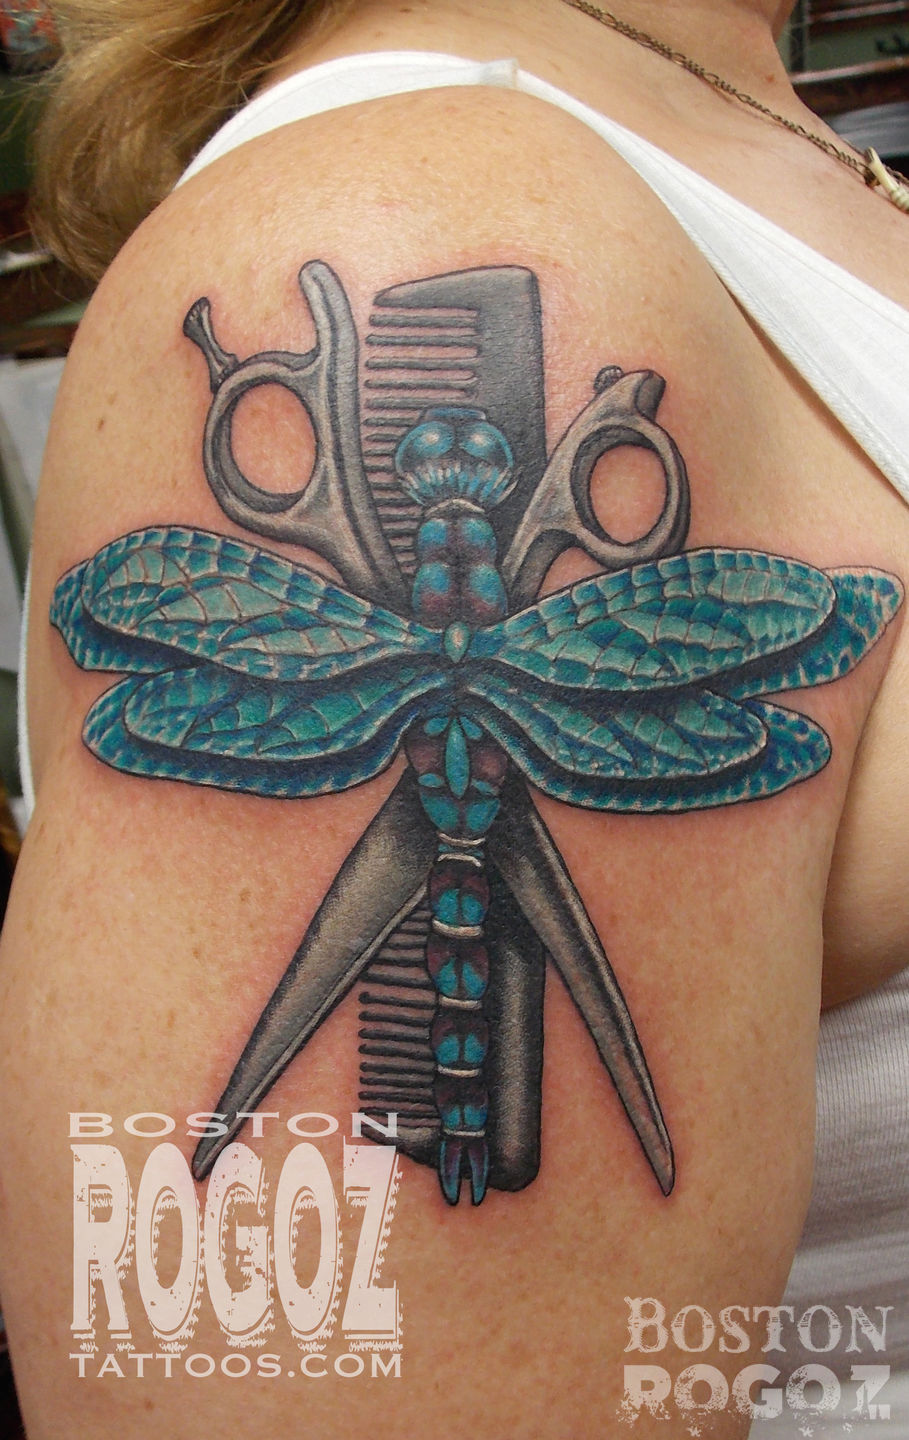 Dragonfly-withshears-jpg